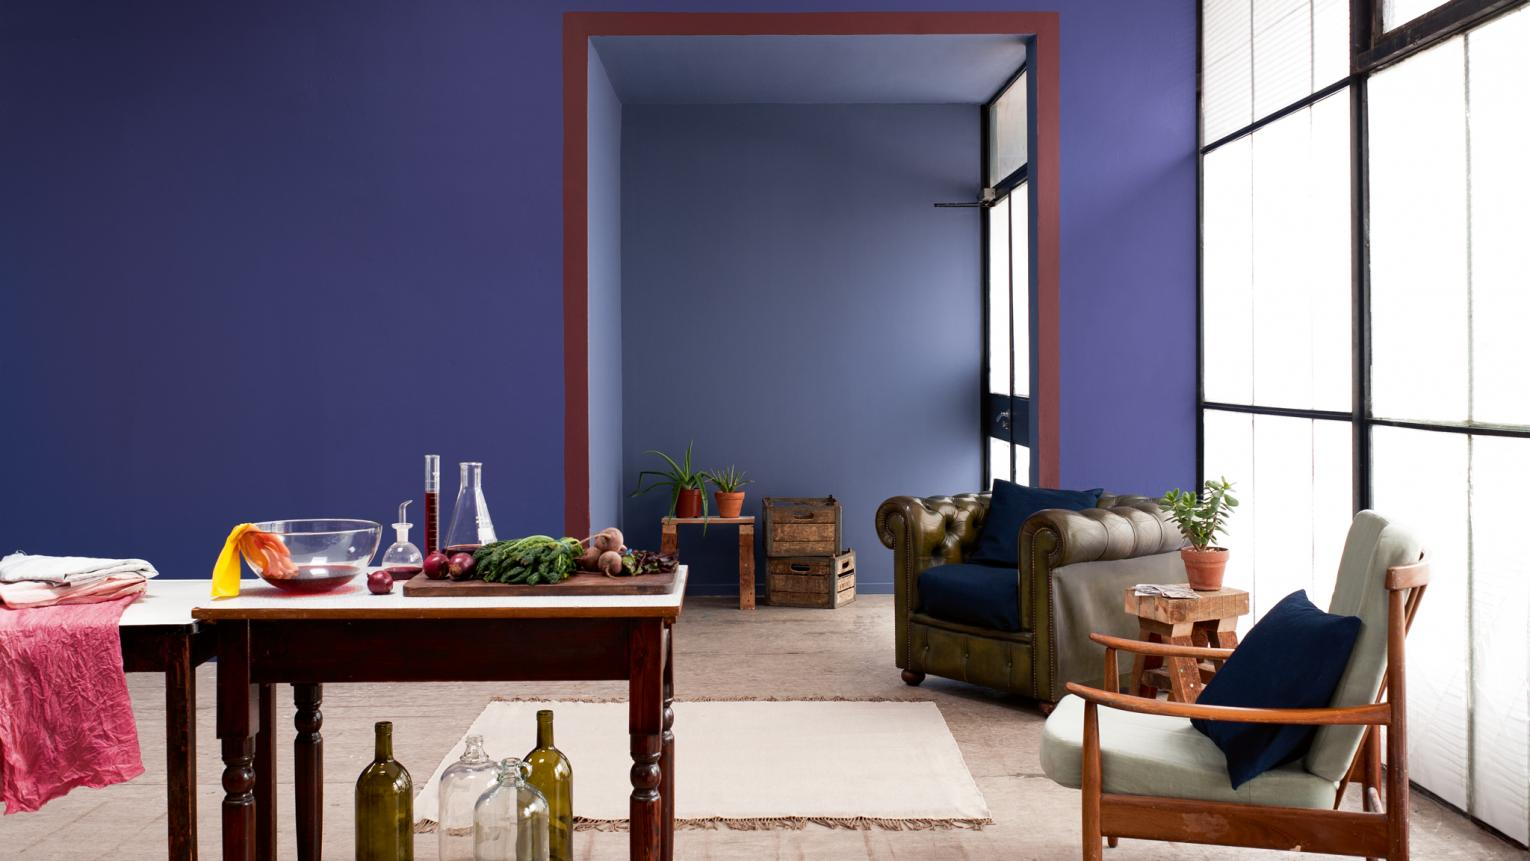 Warm blue paired with earthy red creates a natural harmony.